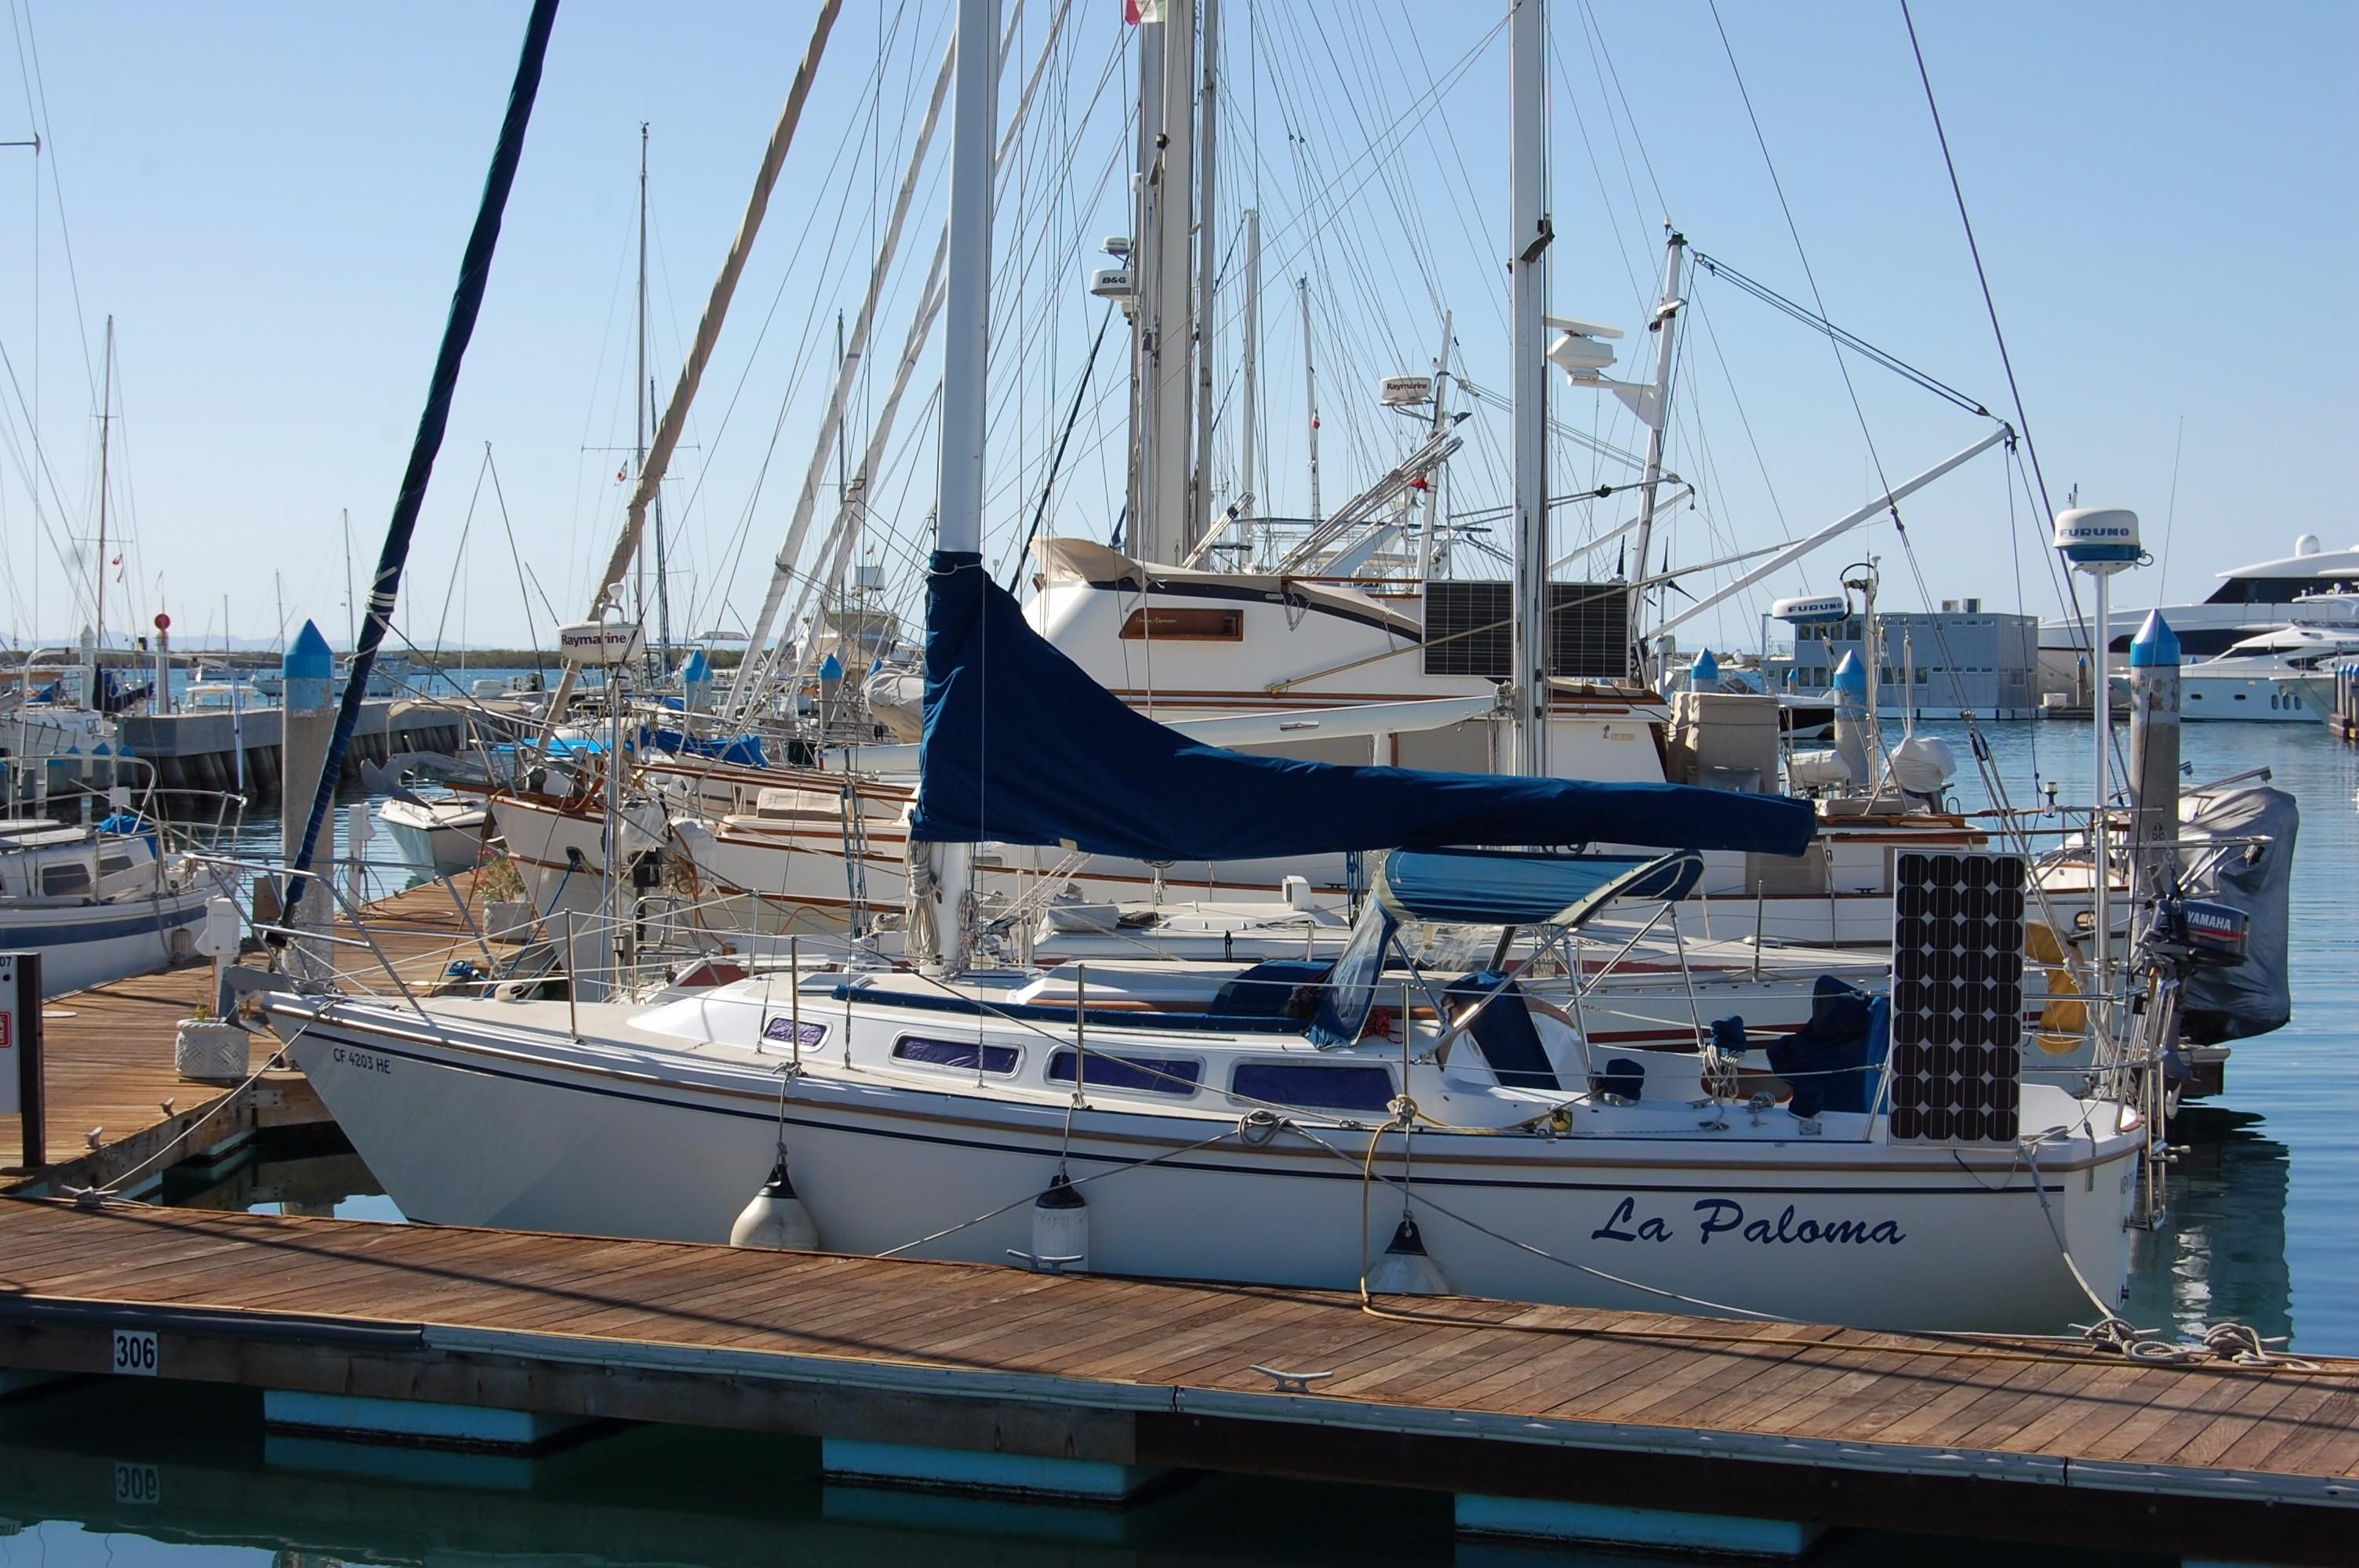 1983 Catalina 30 Sail Boat For Sale - www.yachtworld.com